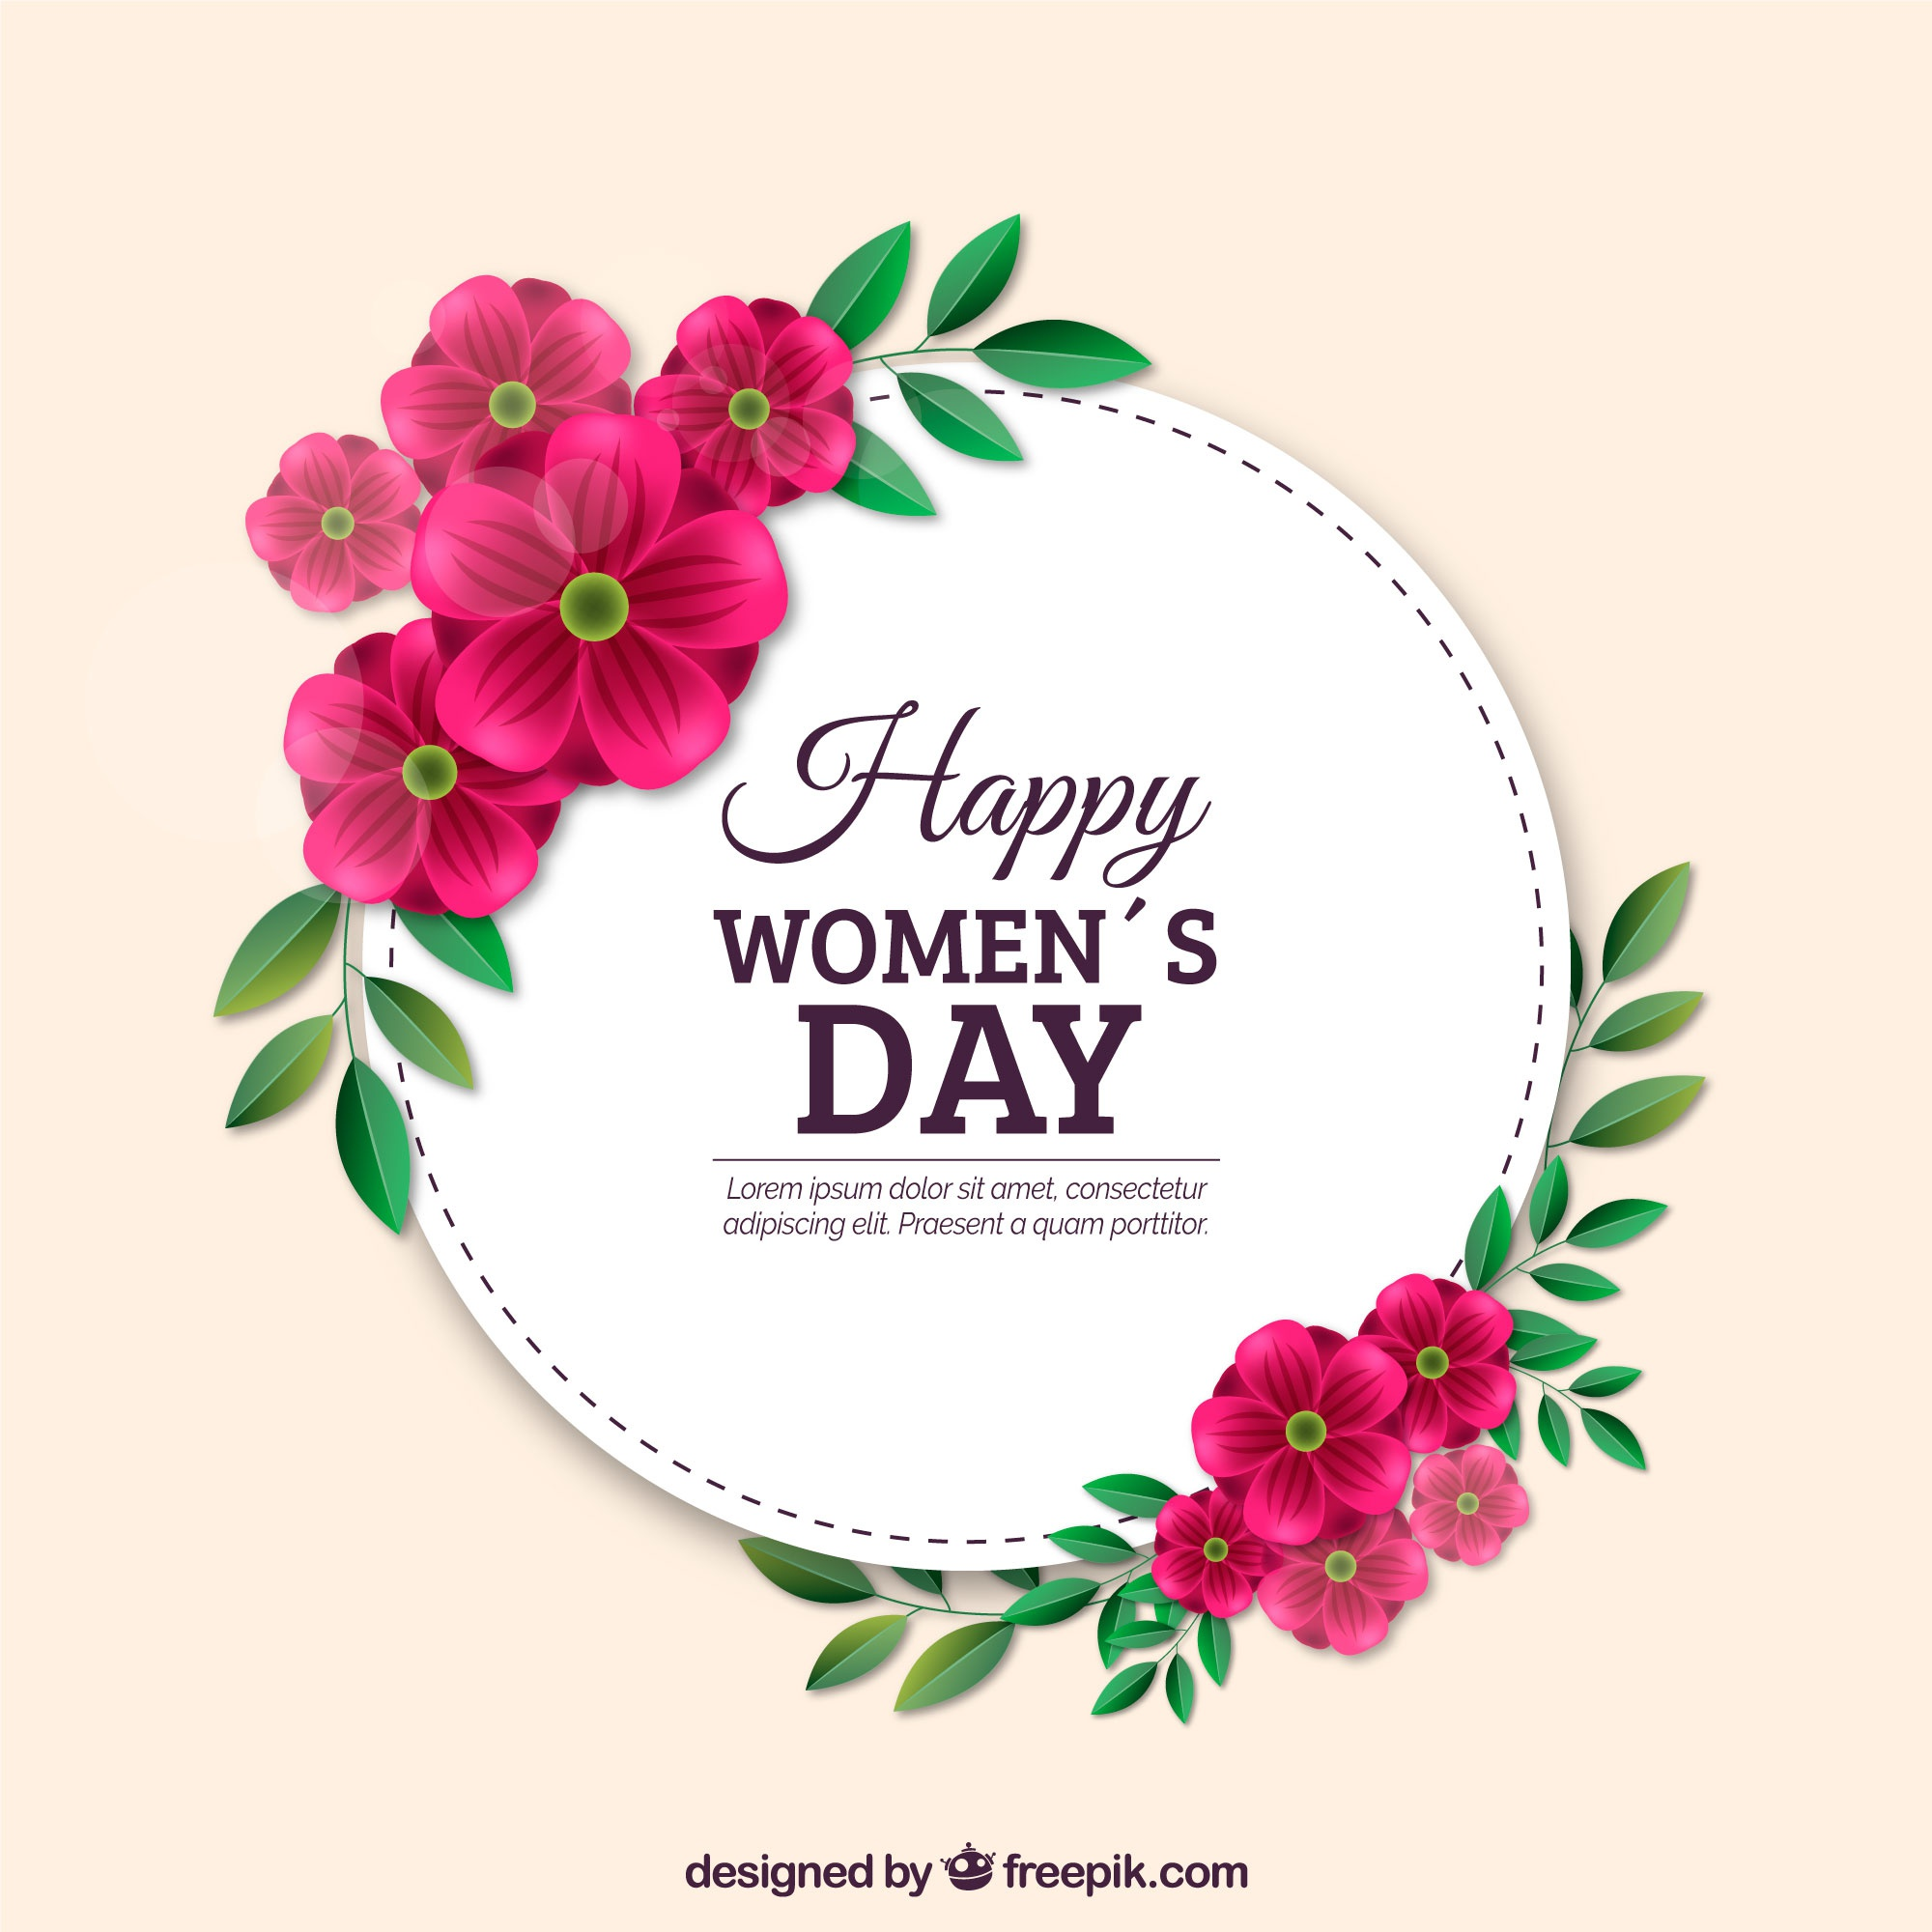 Women's day background in realistic style